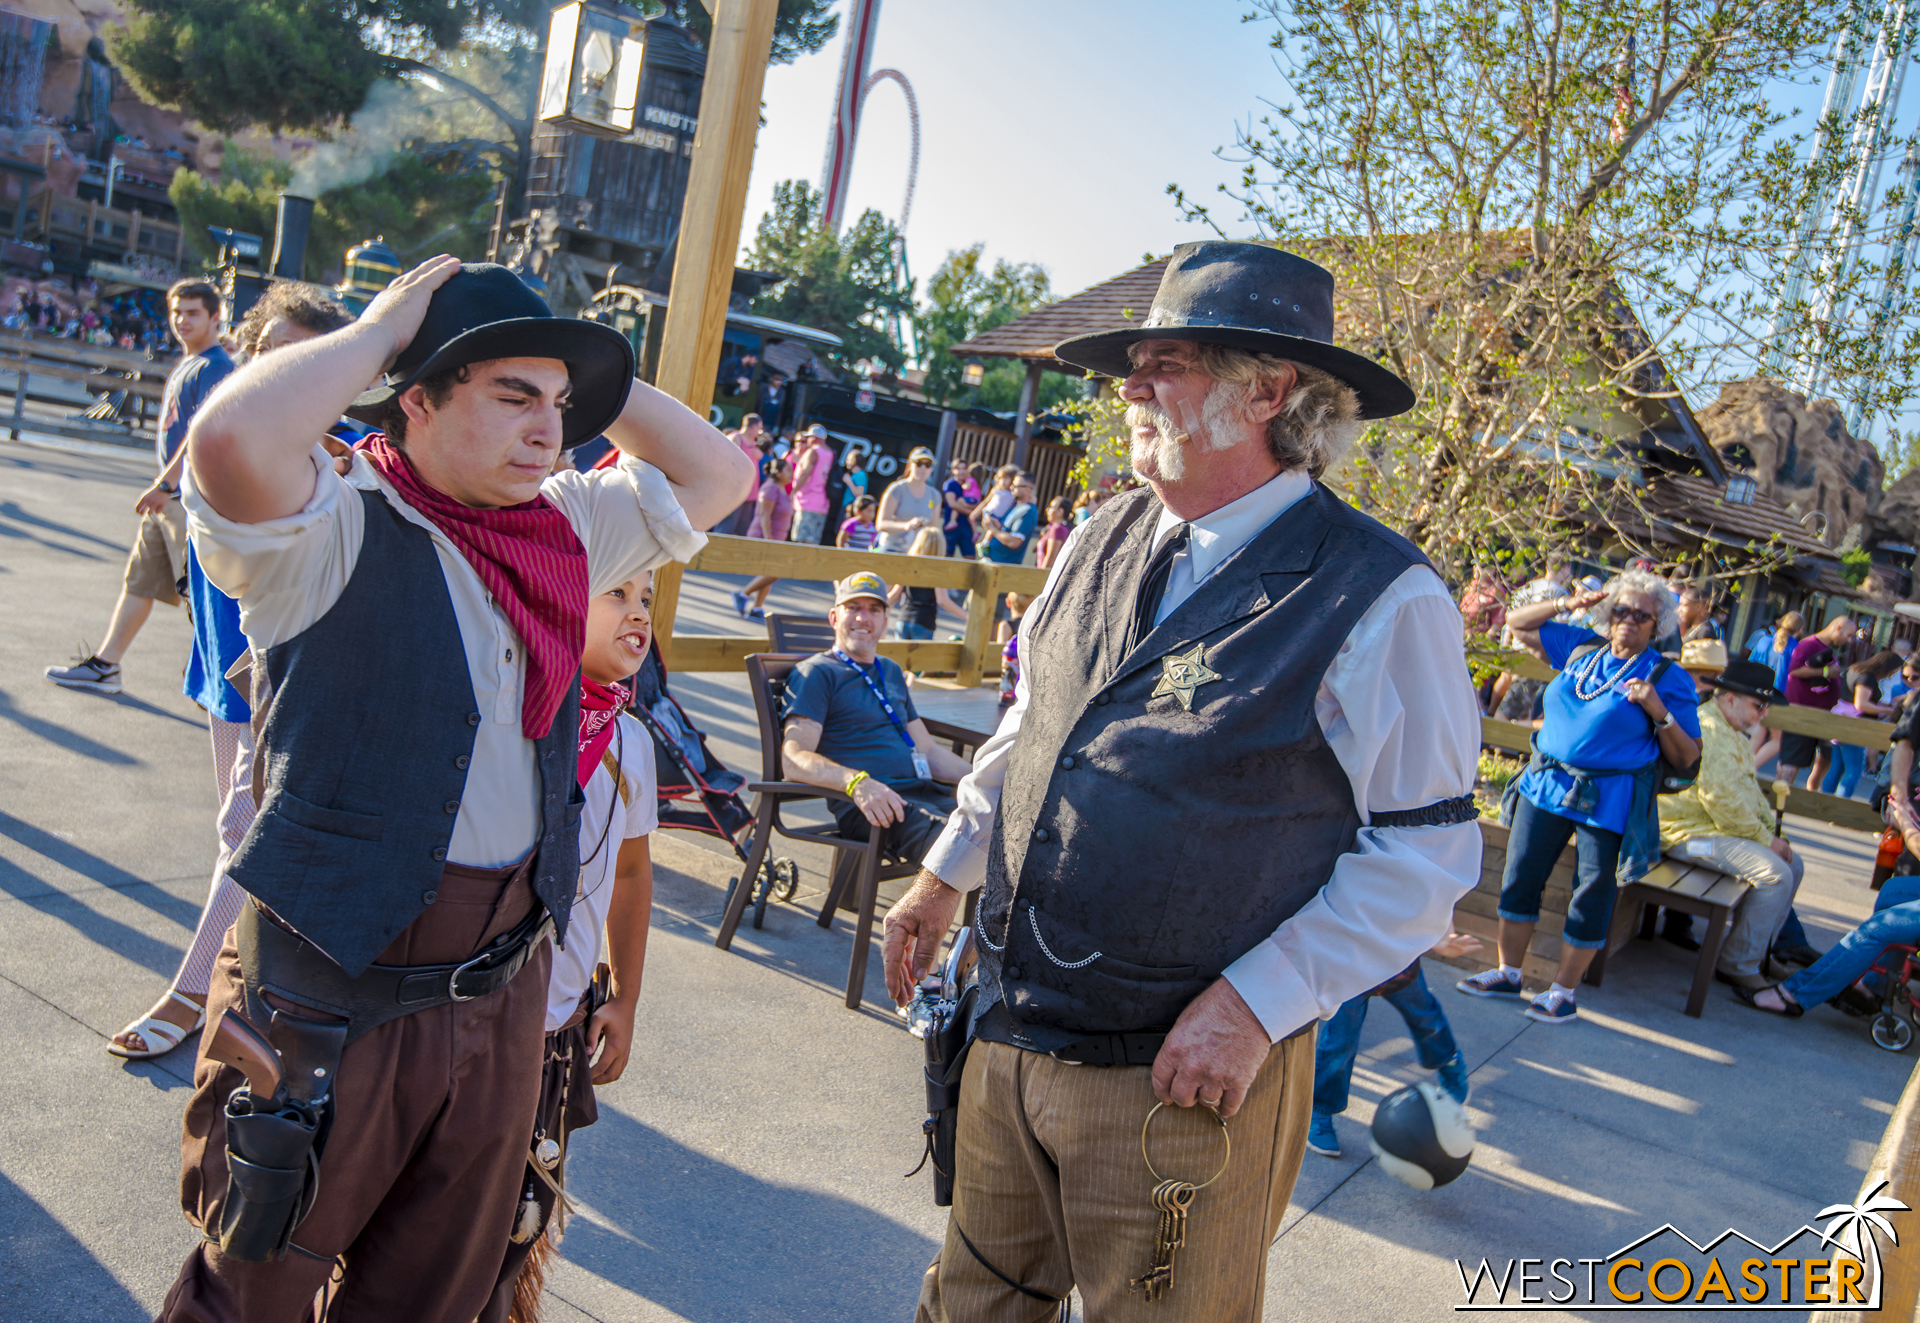 The Sheriff and a citizen have a word.